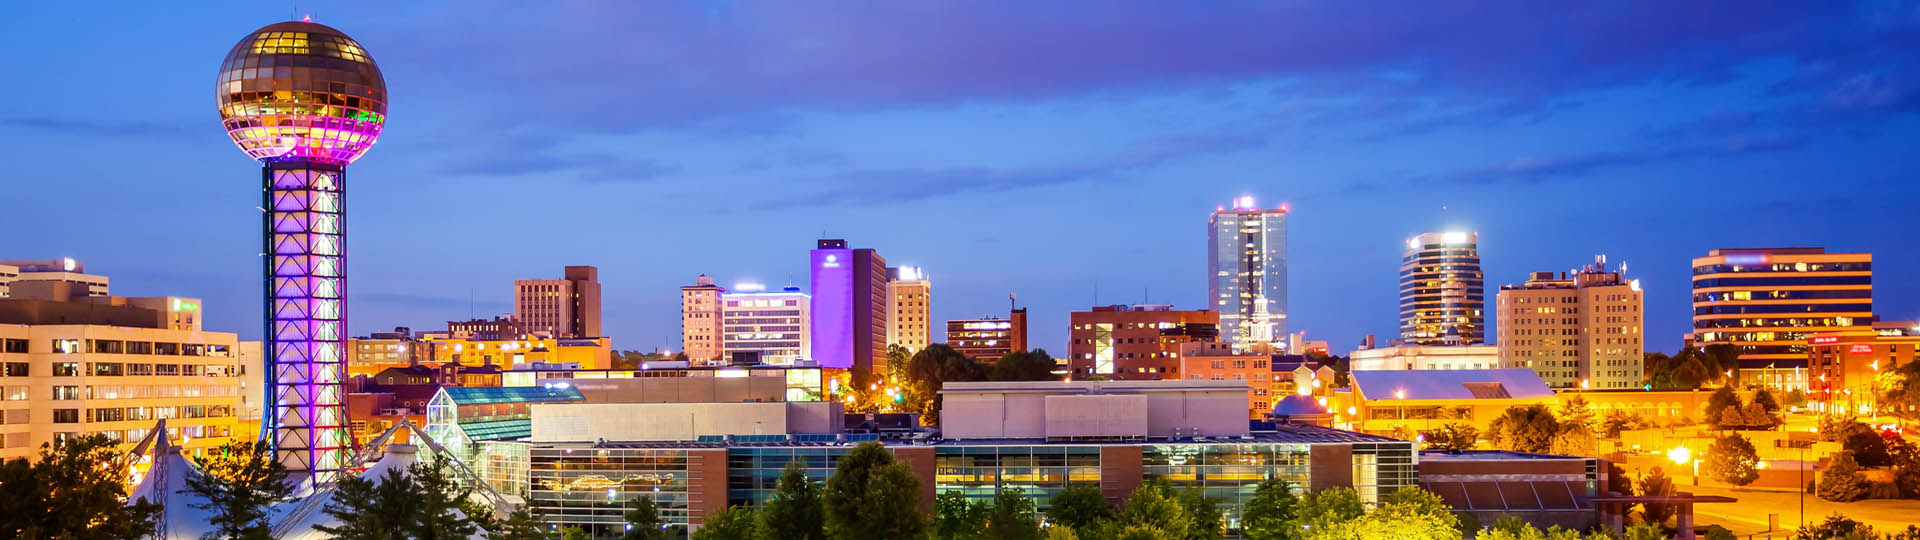 Investors In Knoxville, Tennessee